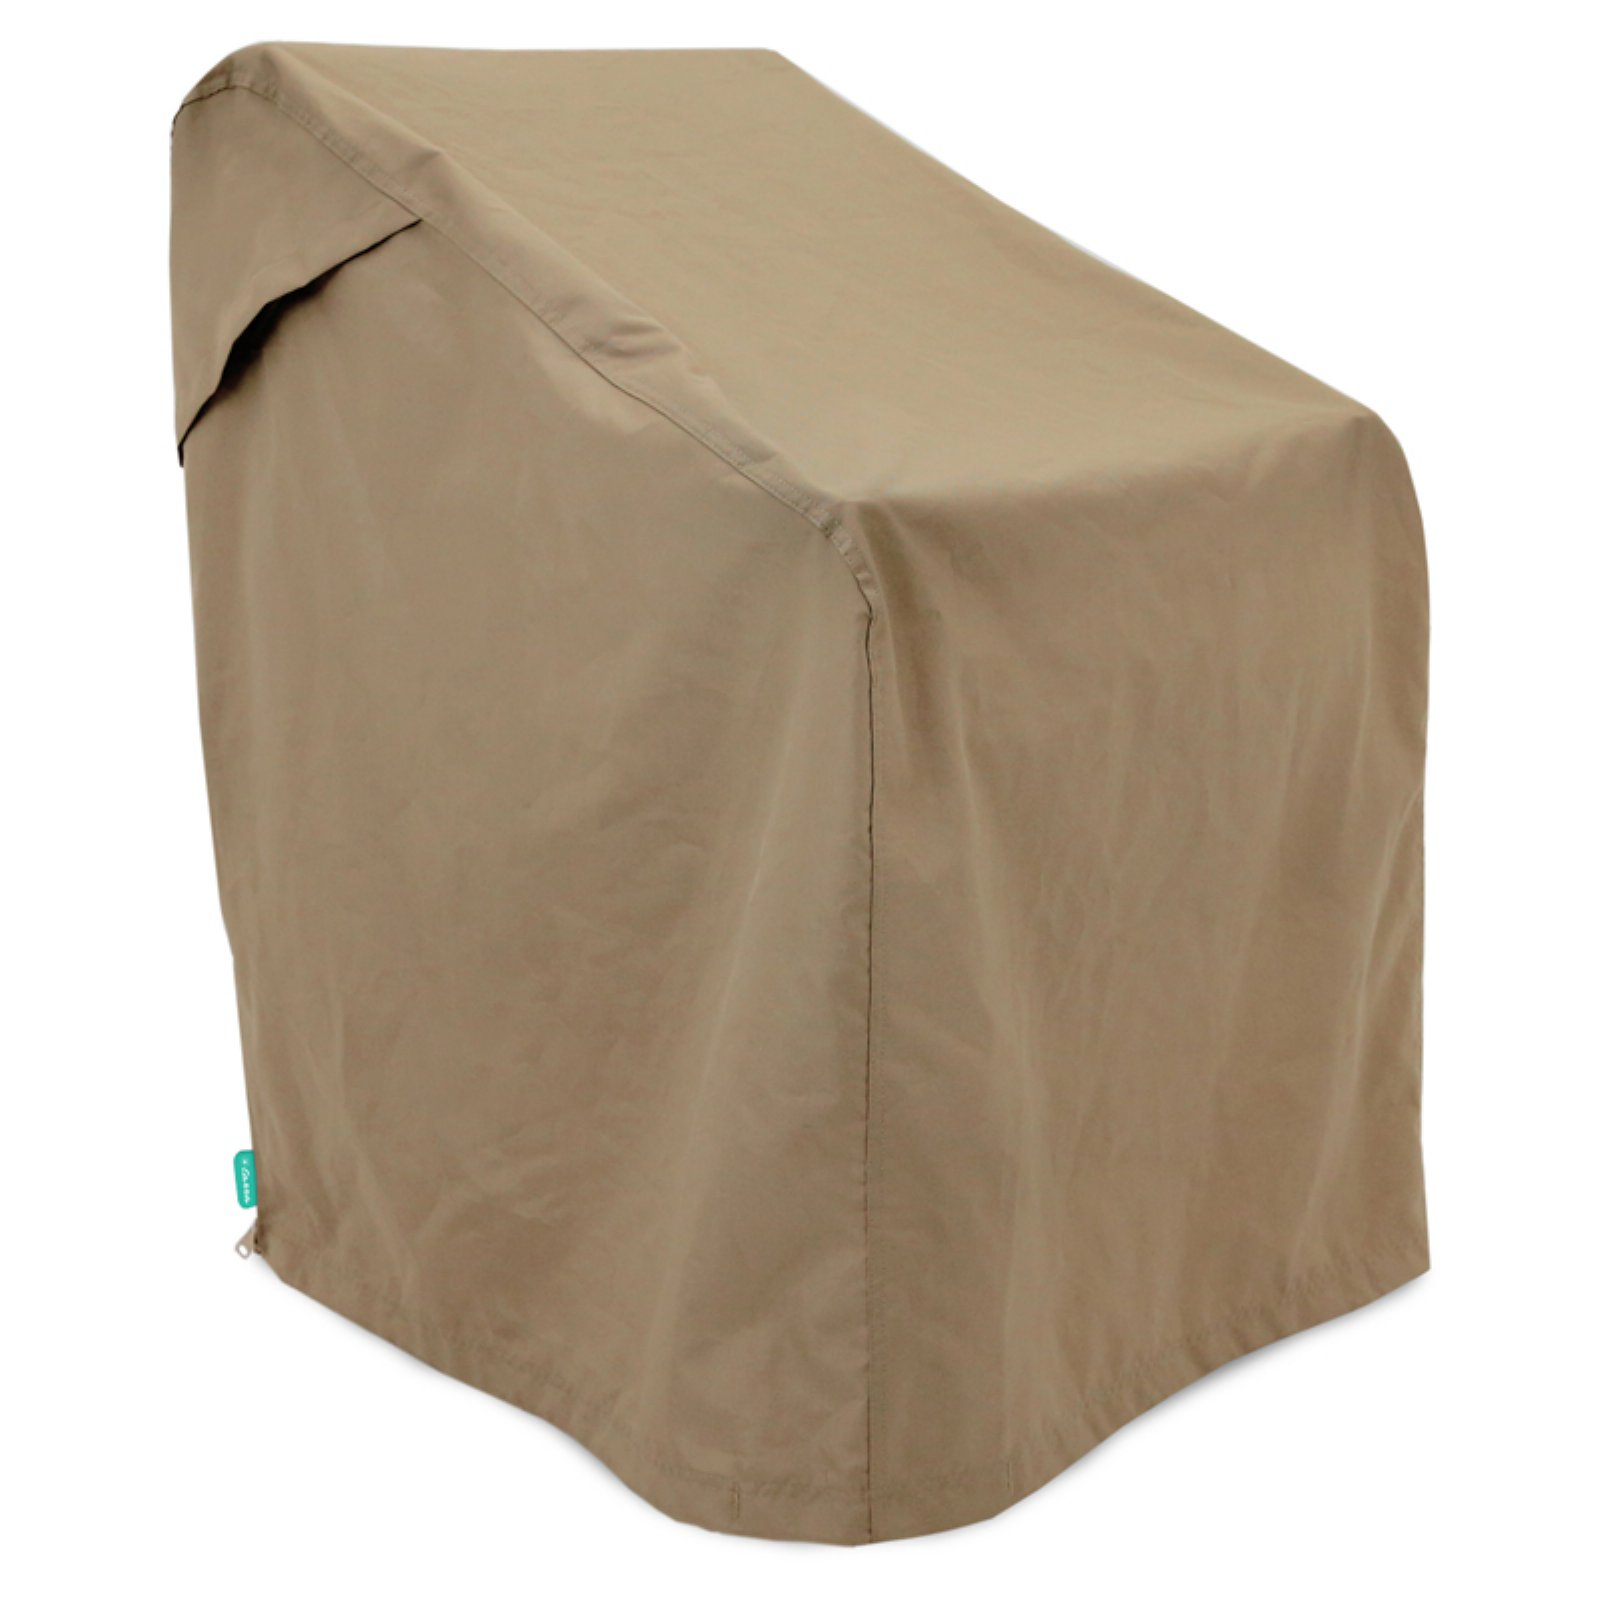 Tarra Home Universal Outdoor UFCCC424235PT Patio Modular Sectional Club Chair Cover